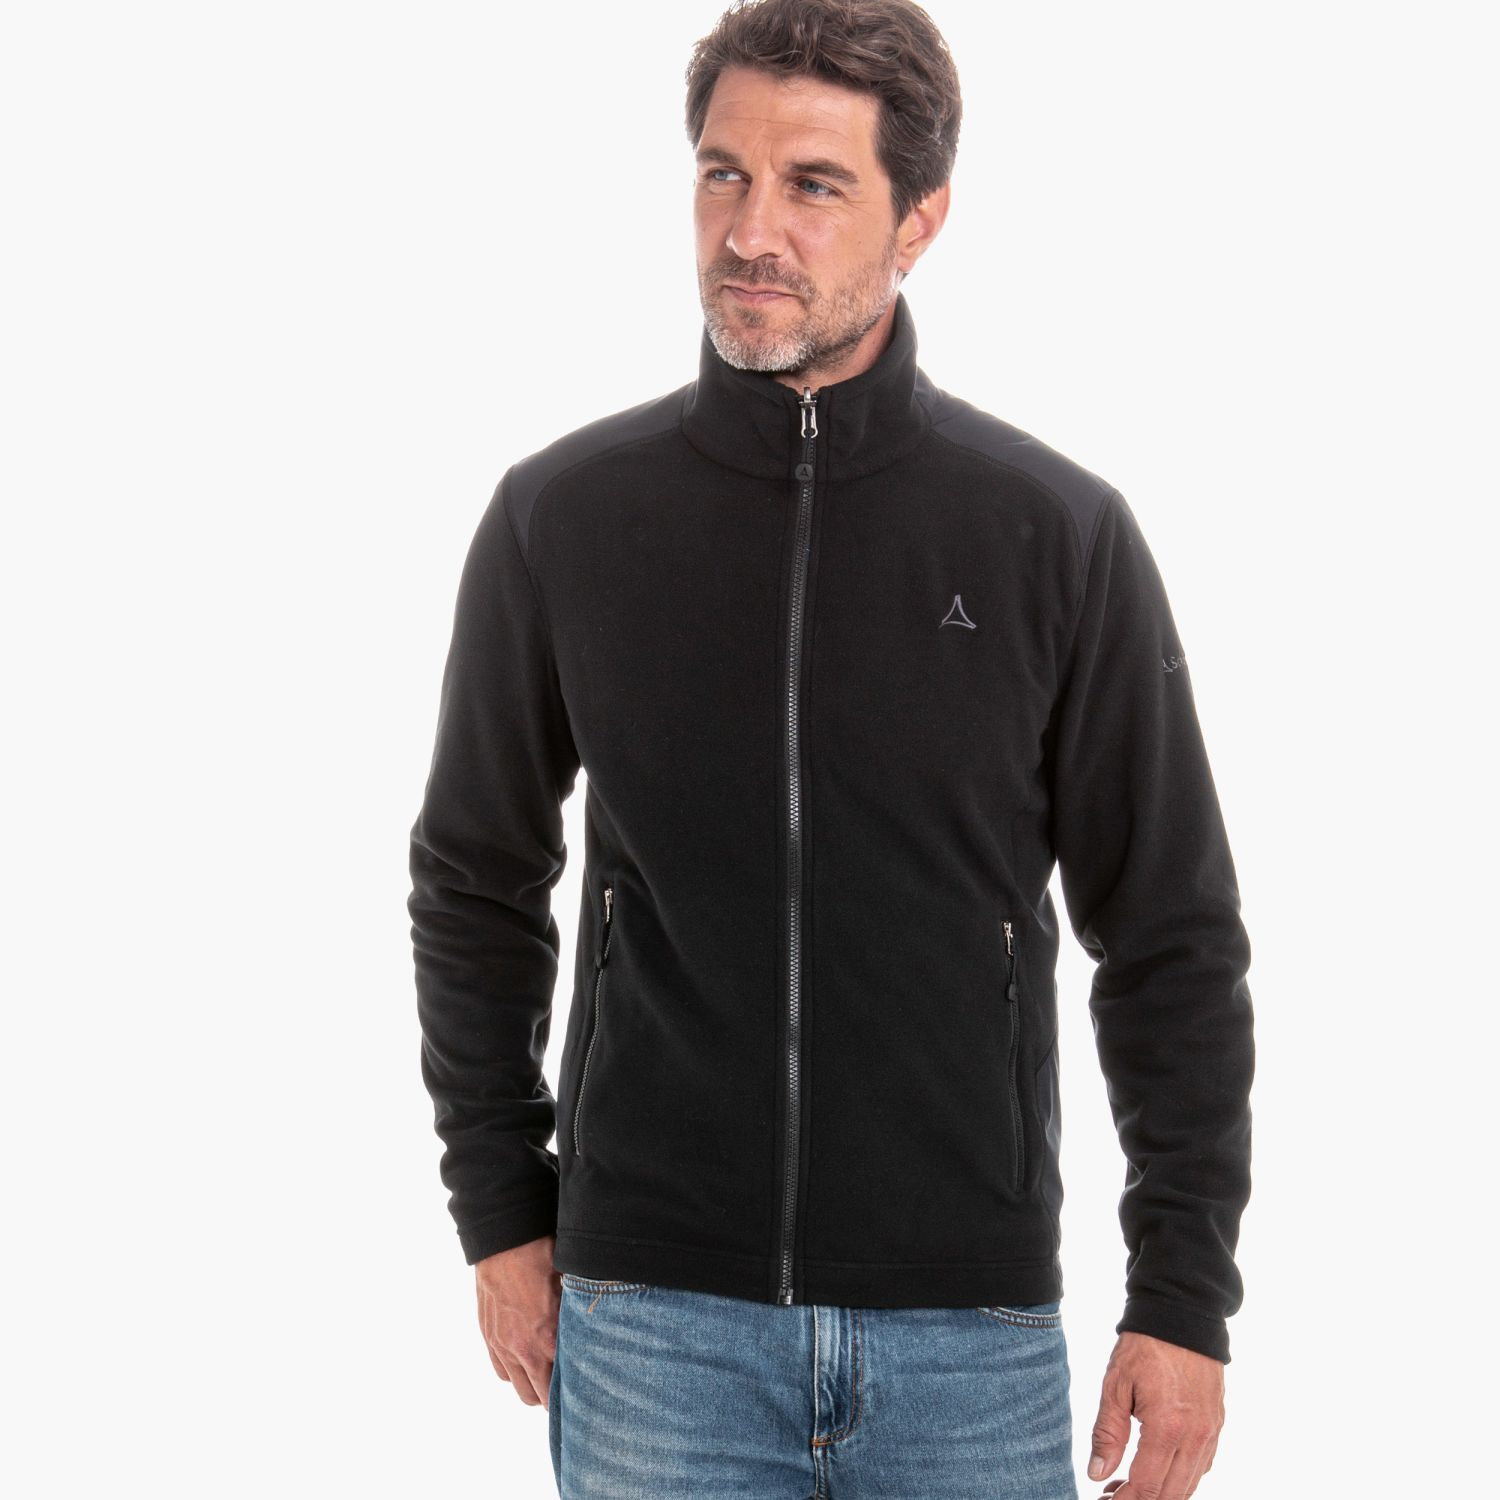 ZipIn! Fleece Adamont